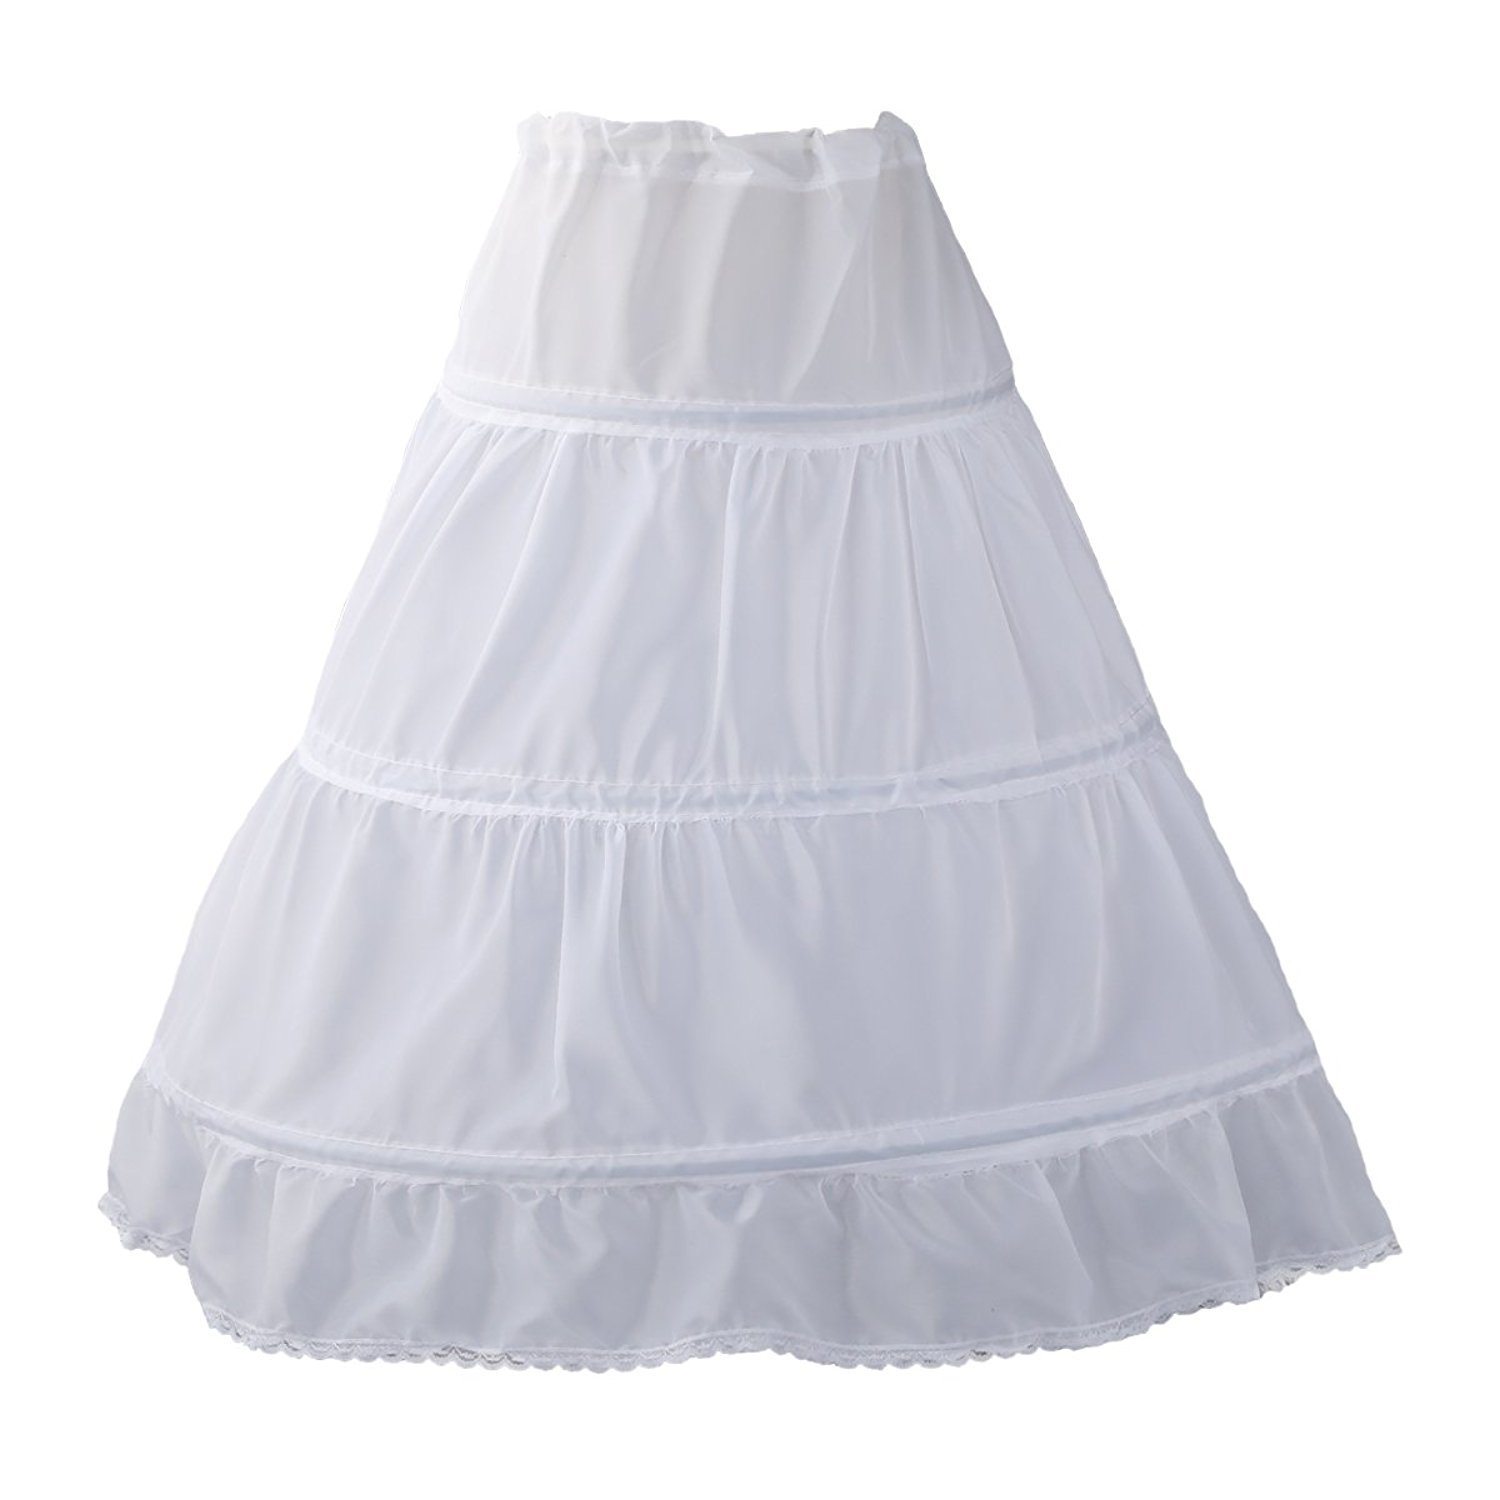 Sittingley White Prom Use Petticoat For Little Age Girls One Size